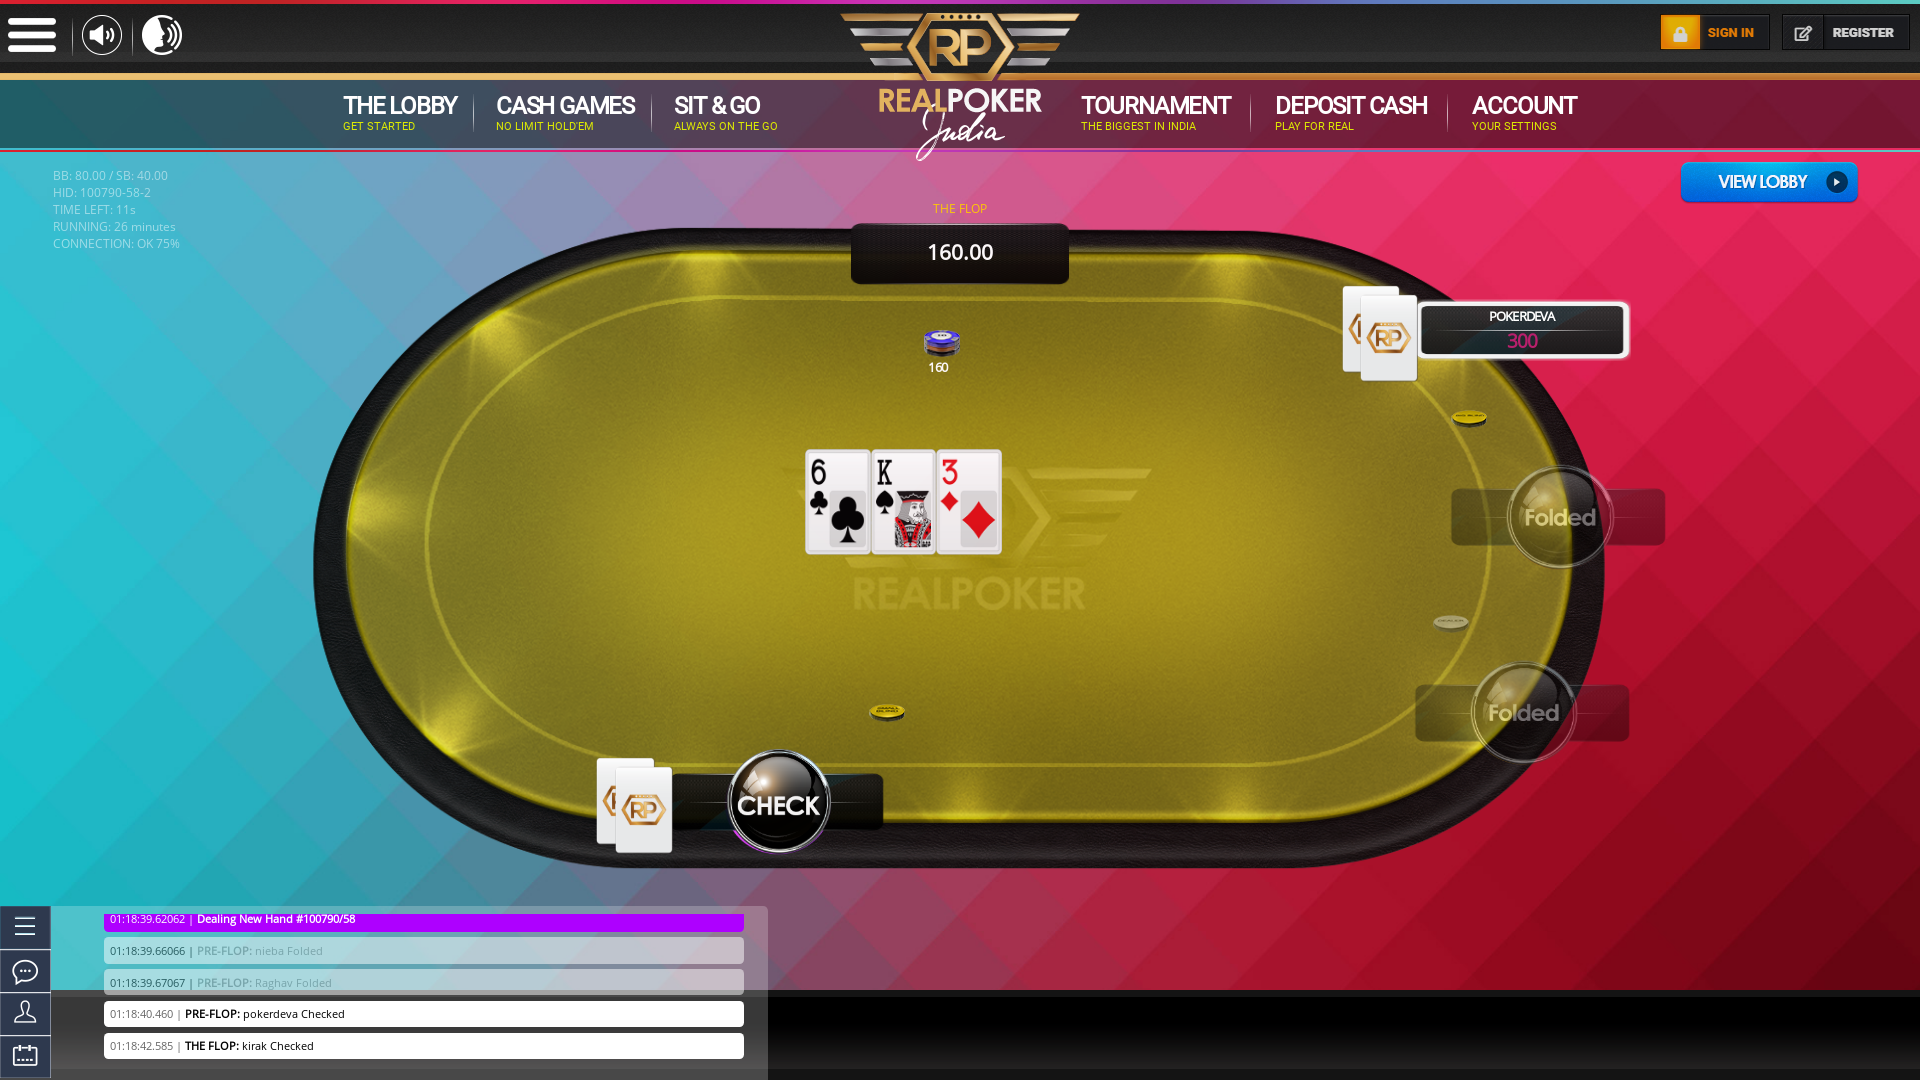 Real poker 10 player table in the 26th minute of the match